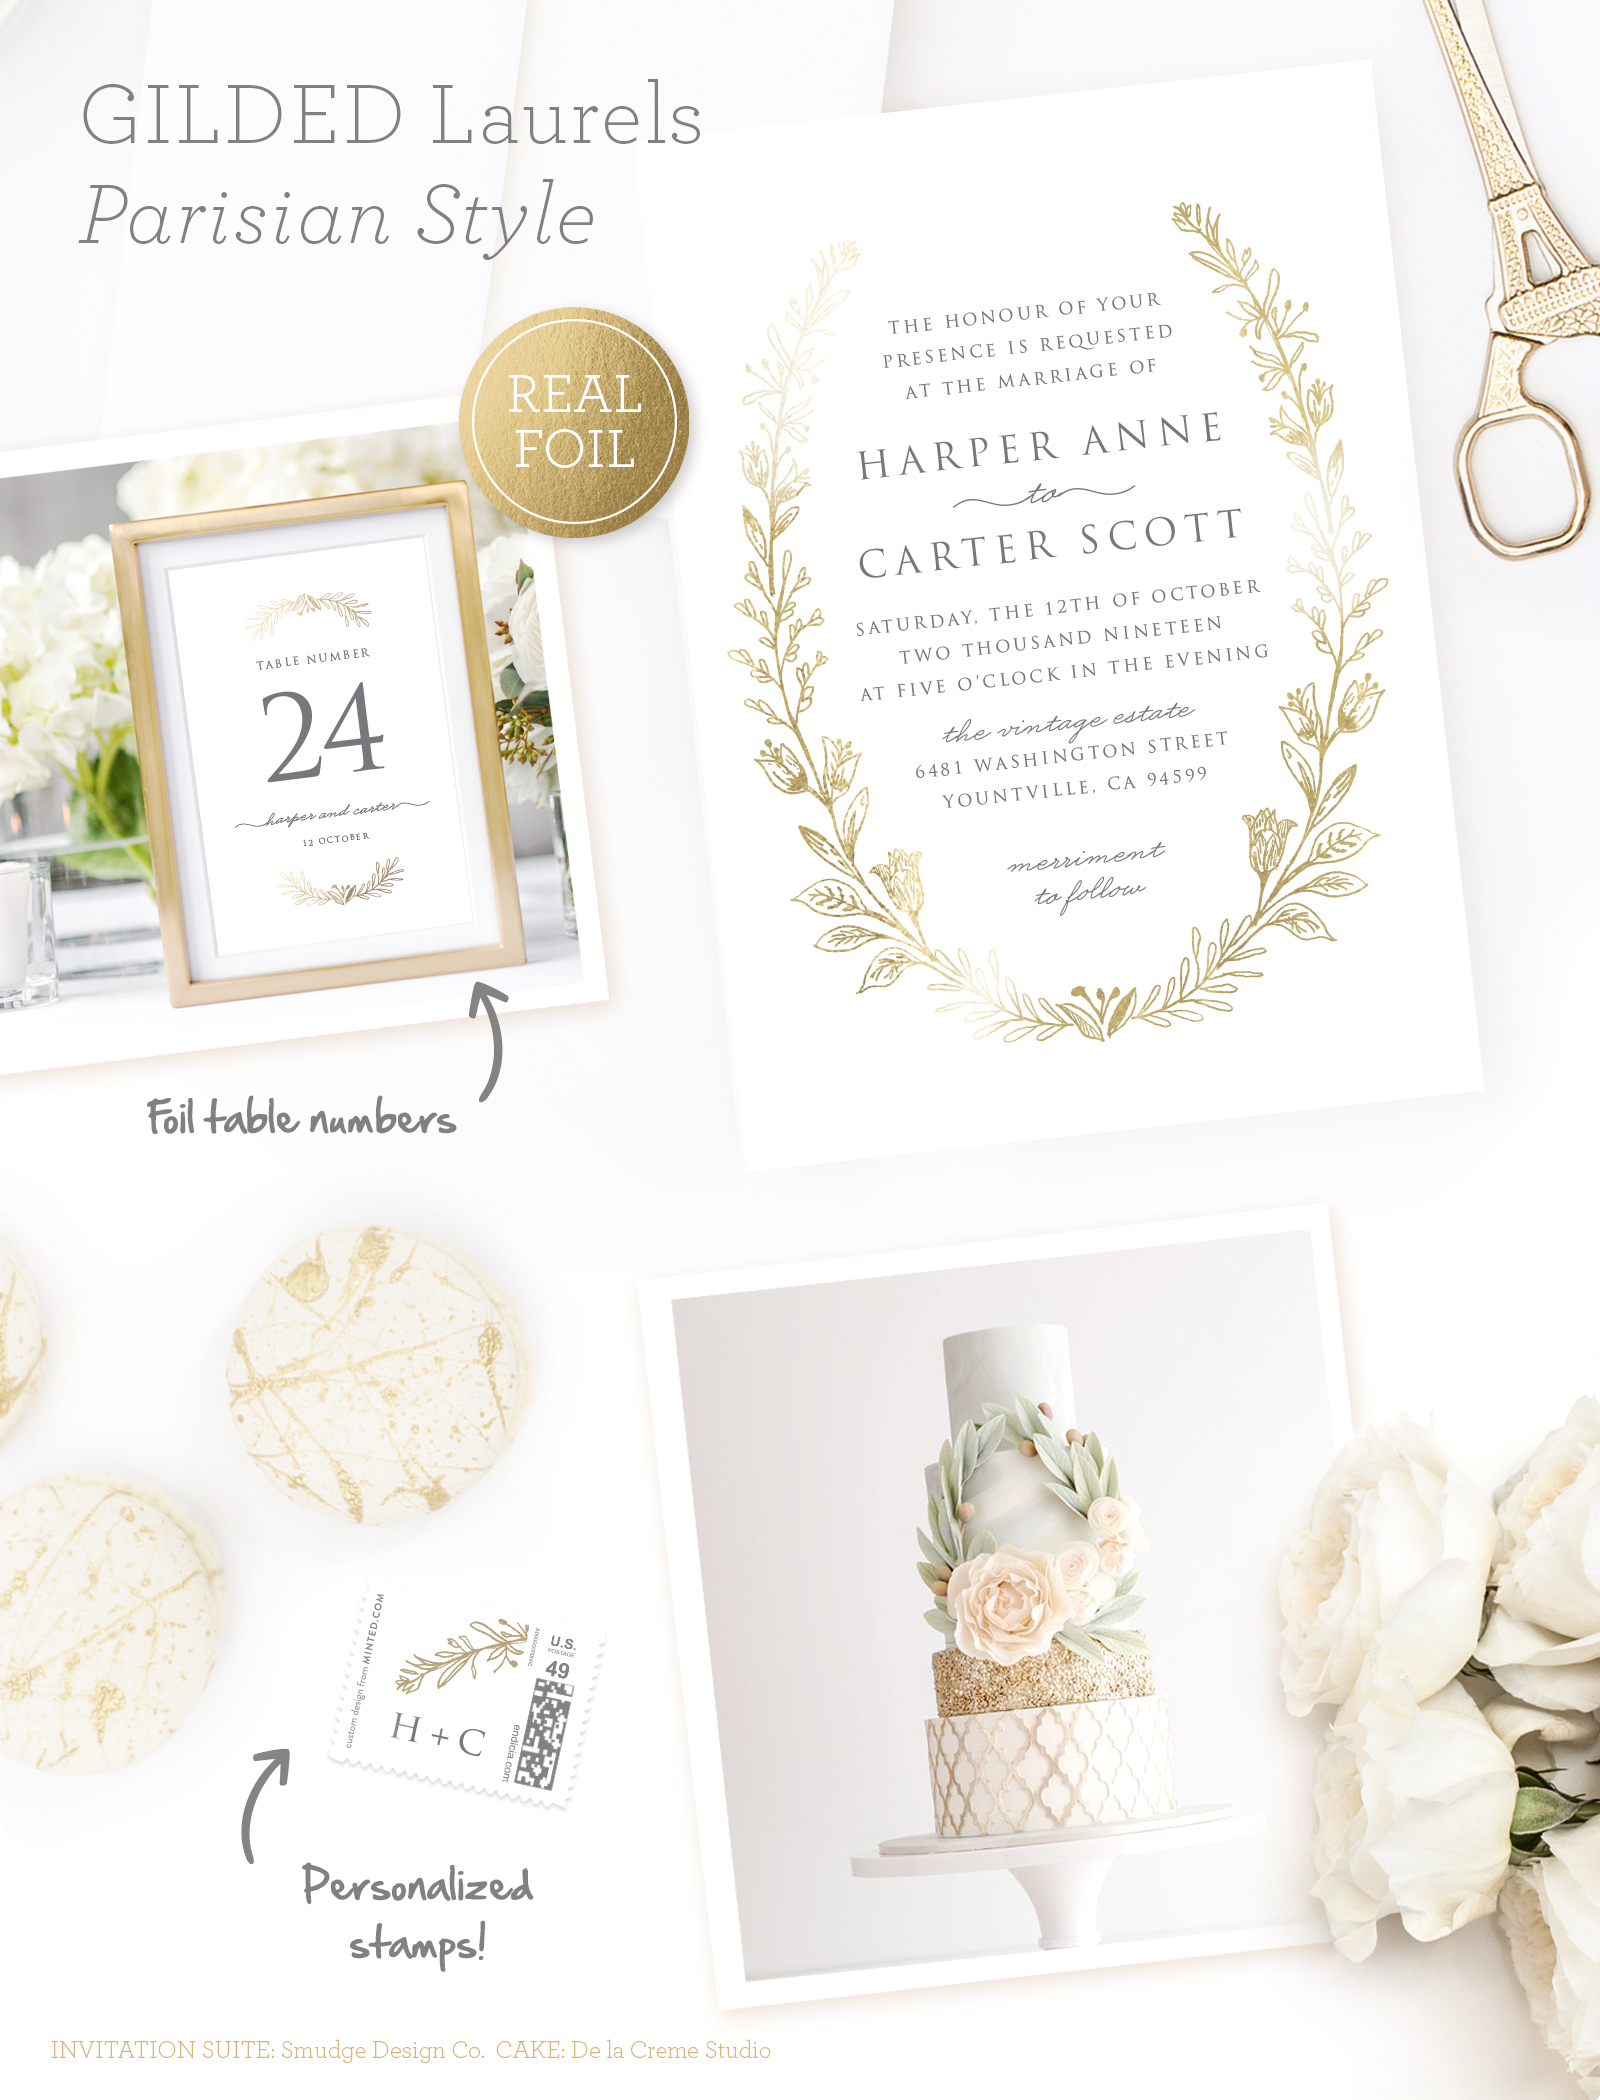 gilded-laurels-wedding-pinterest.jpg